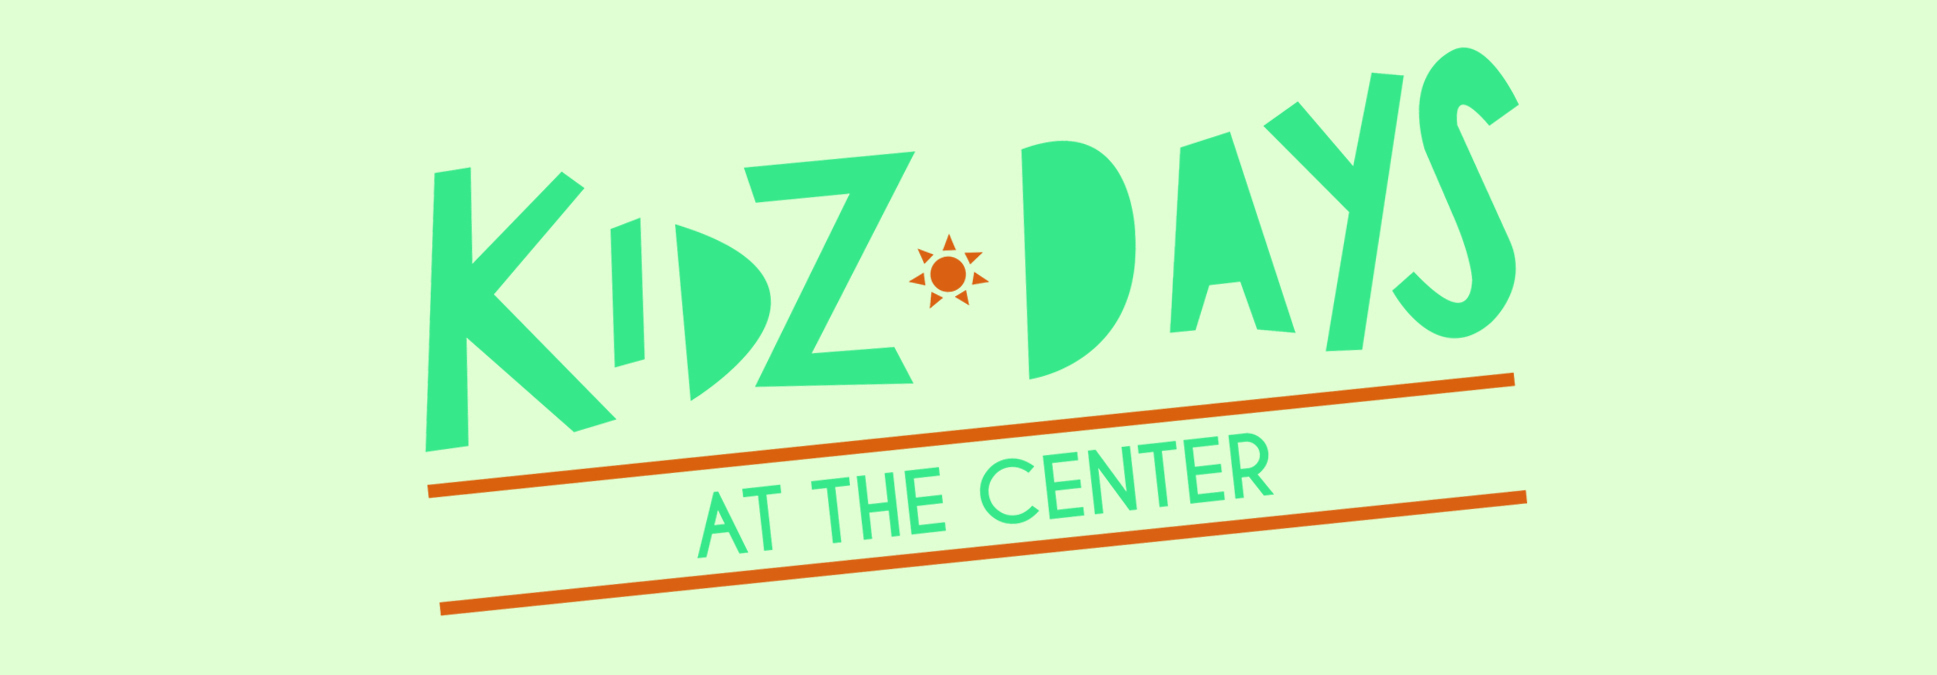 KidZ Days at the Center Returns to the Marcus Center's KidZ Stage